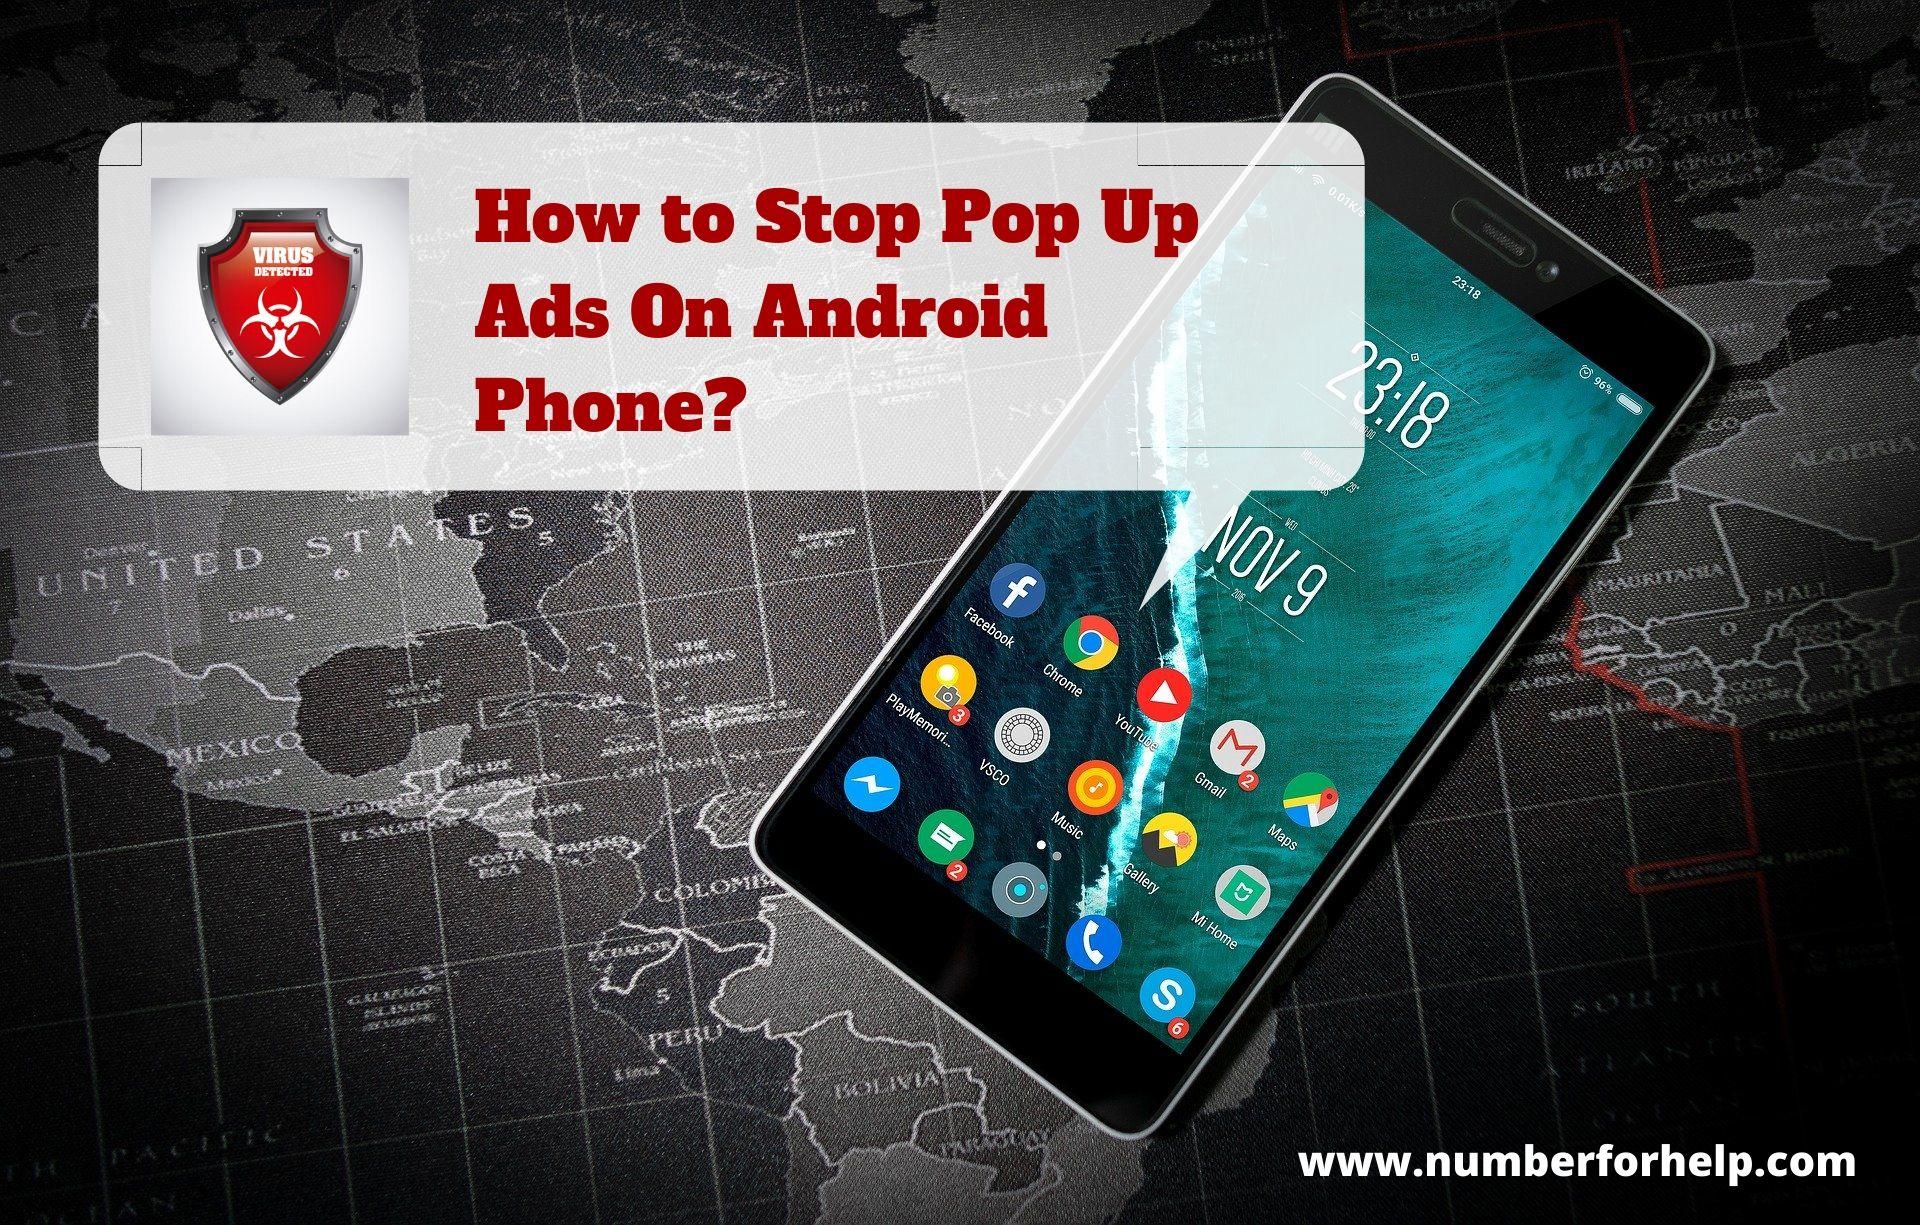 2019-11-25-11-39-44How to Stop Pop Up Ads On Android Phone